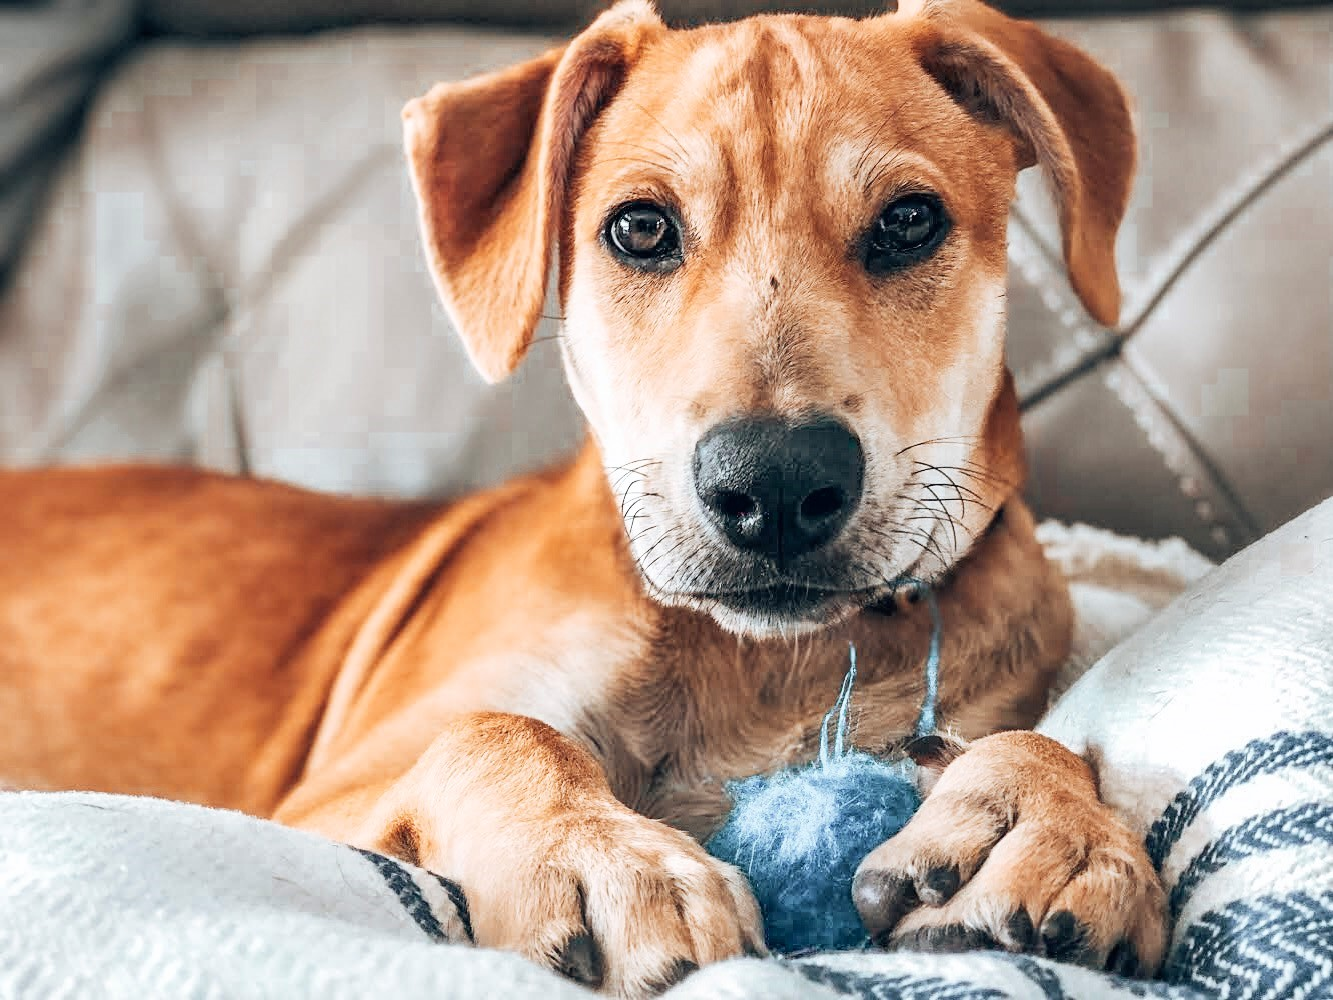 Adopt a Dog from the British Virgin Islands - Animal Charities transport Island Dogs to the United States